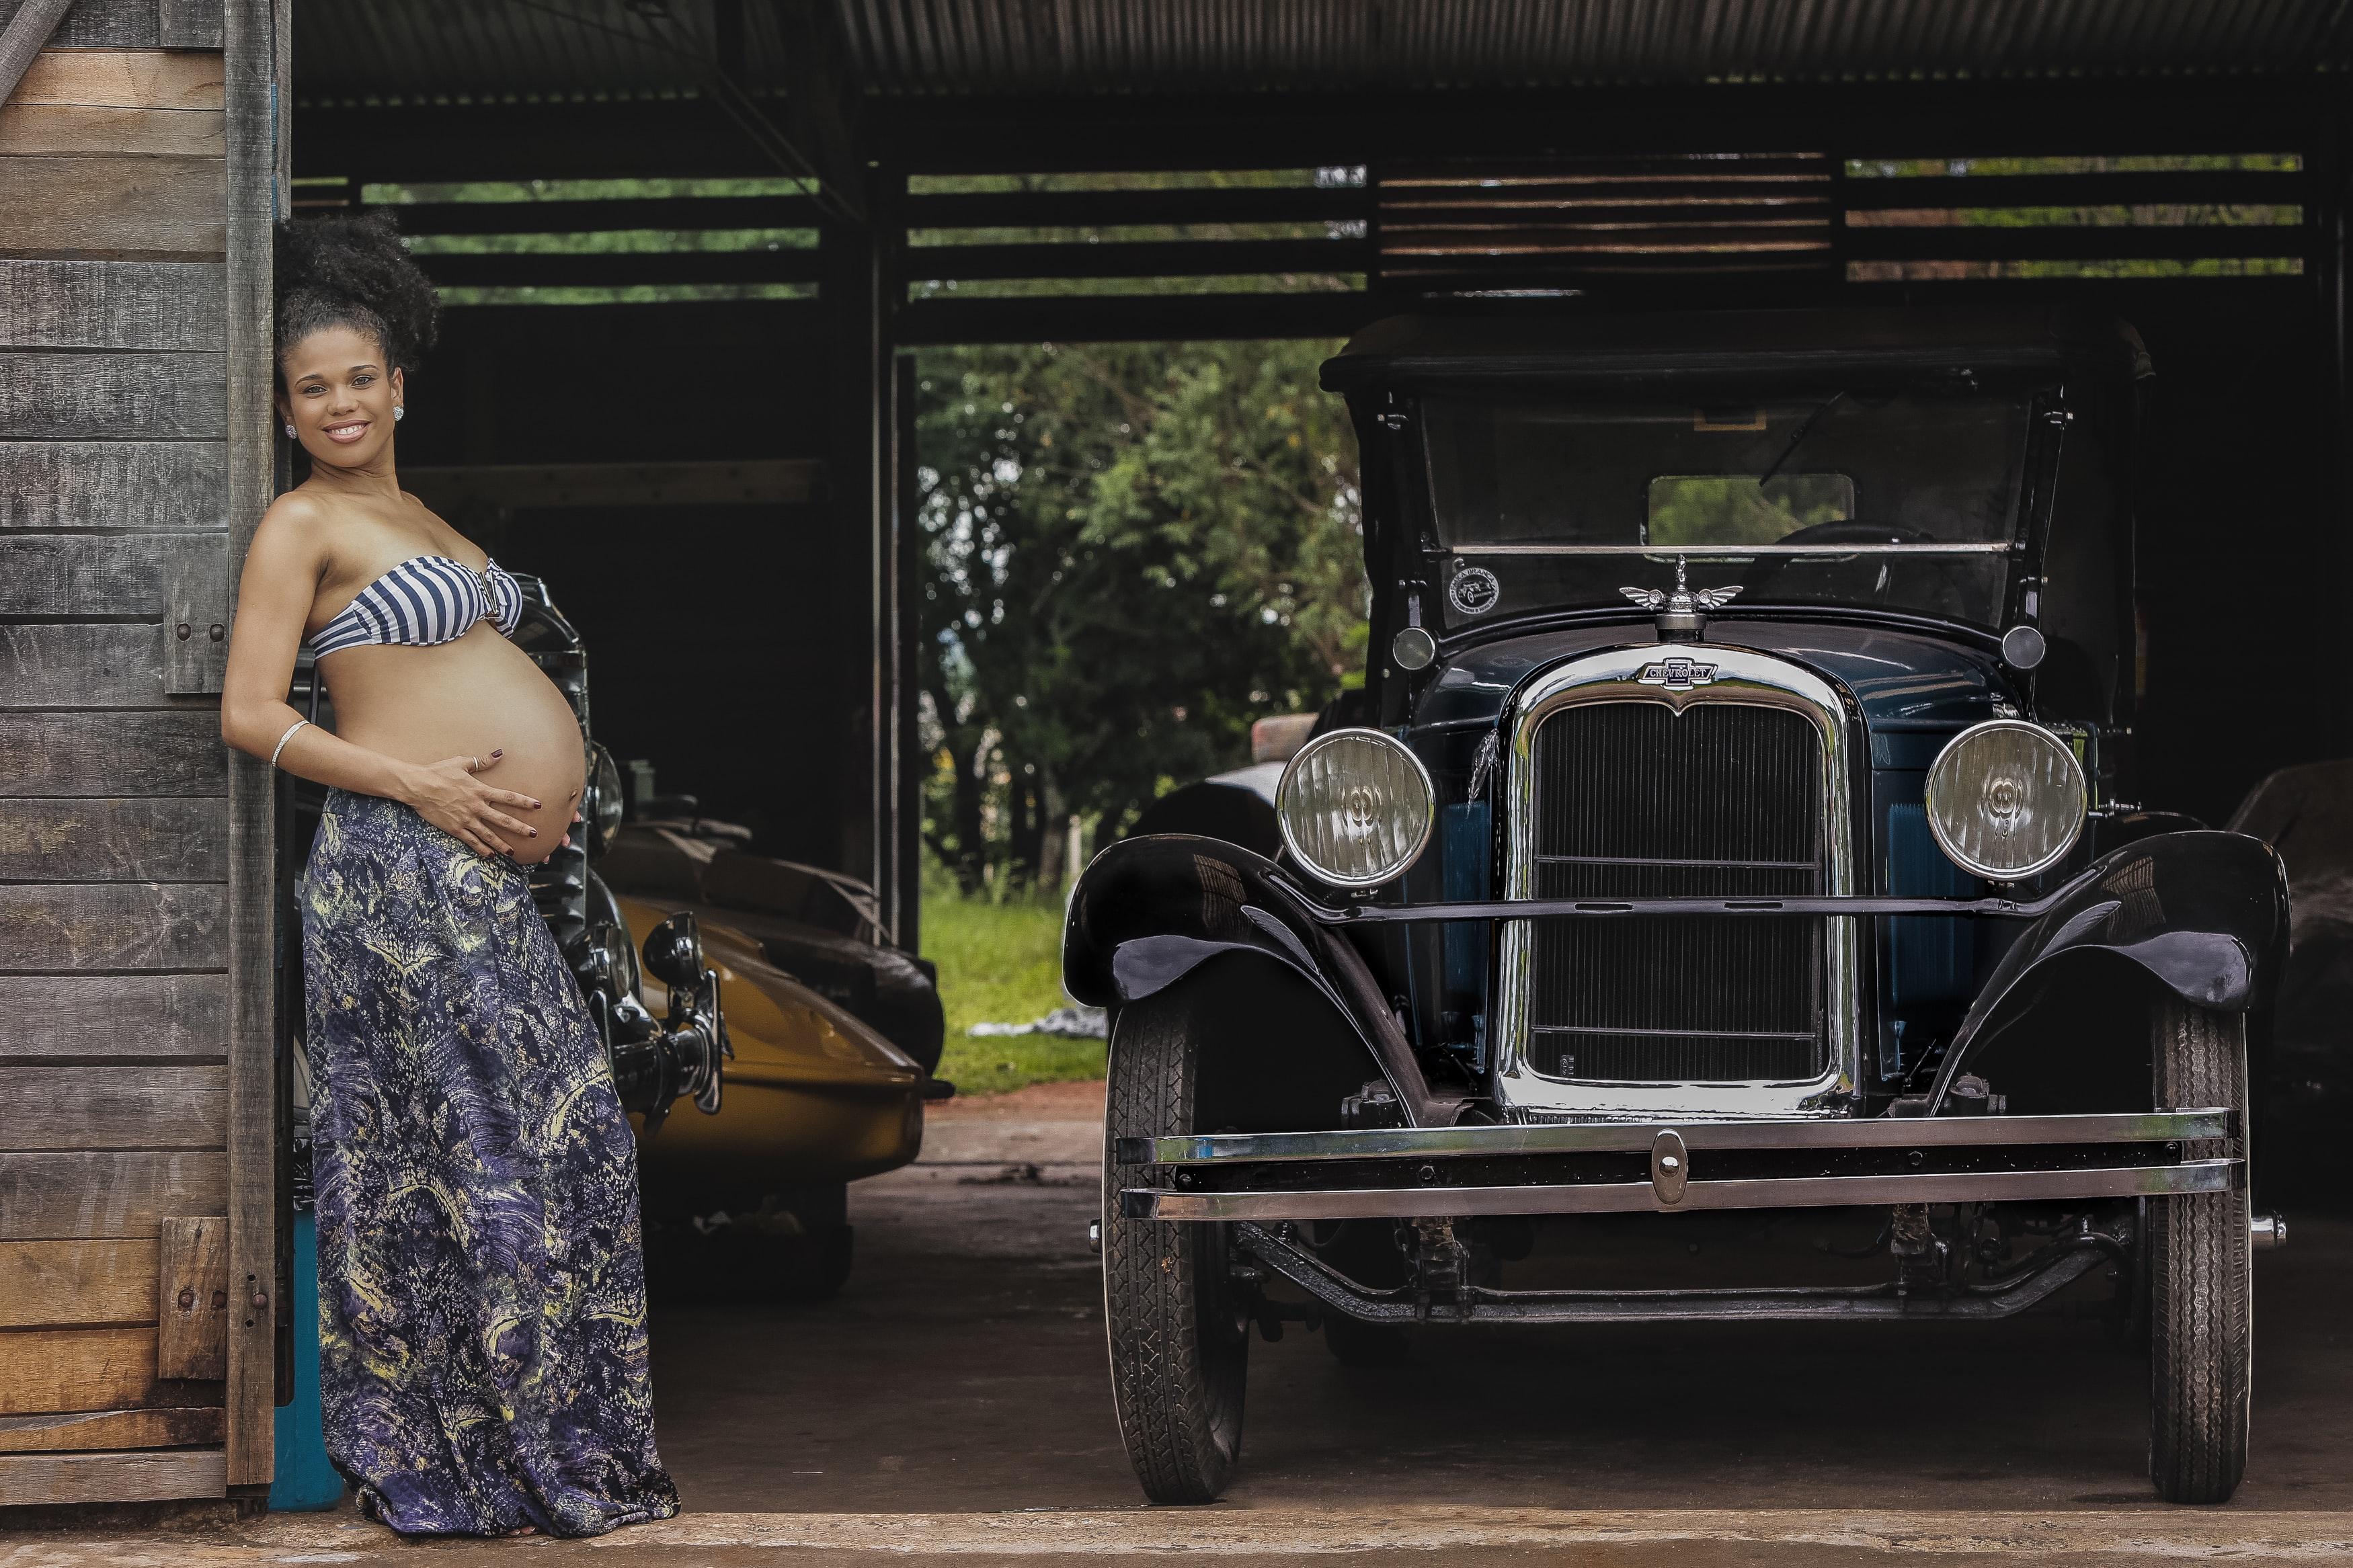 Smiling pregnant woman in Brasilia leaning against a wooden garage wall next to an antique Chevrolet